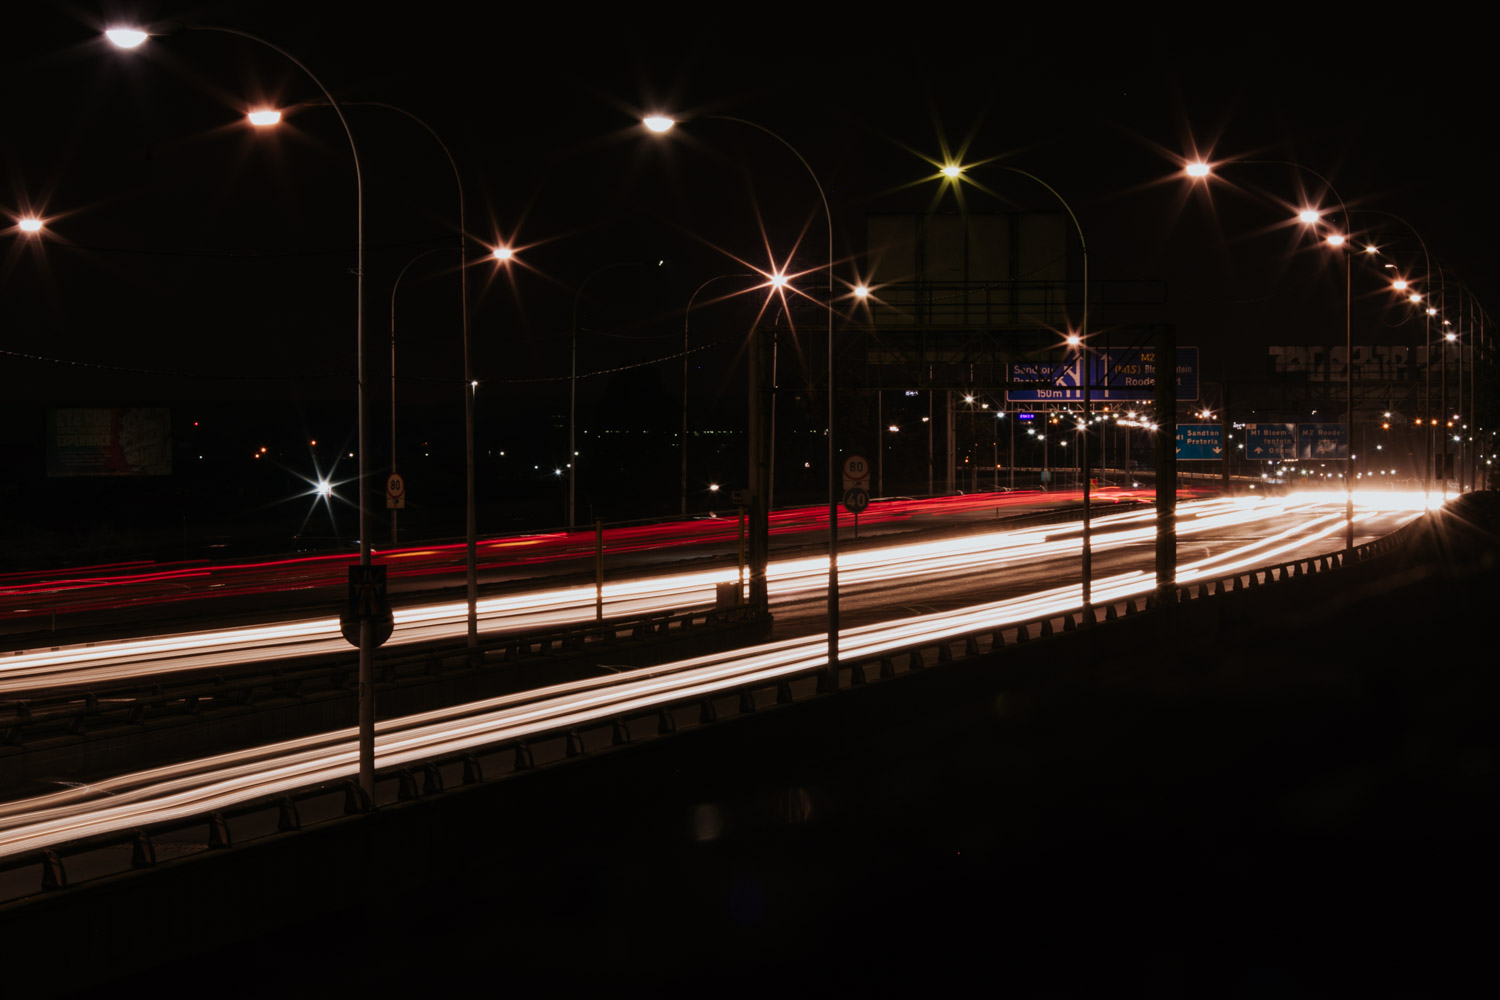 Slow Shutter Photo Car Lights On Bridge